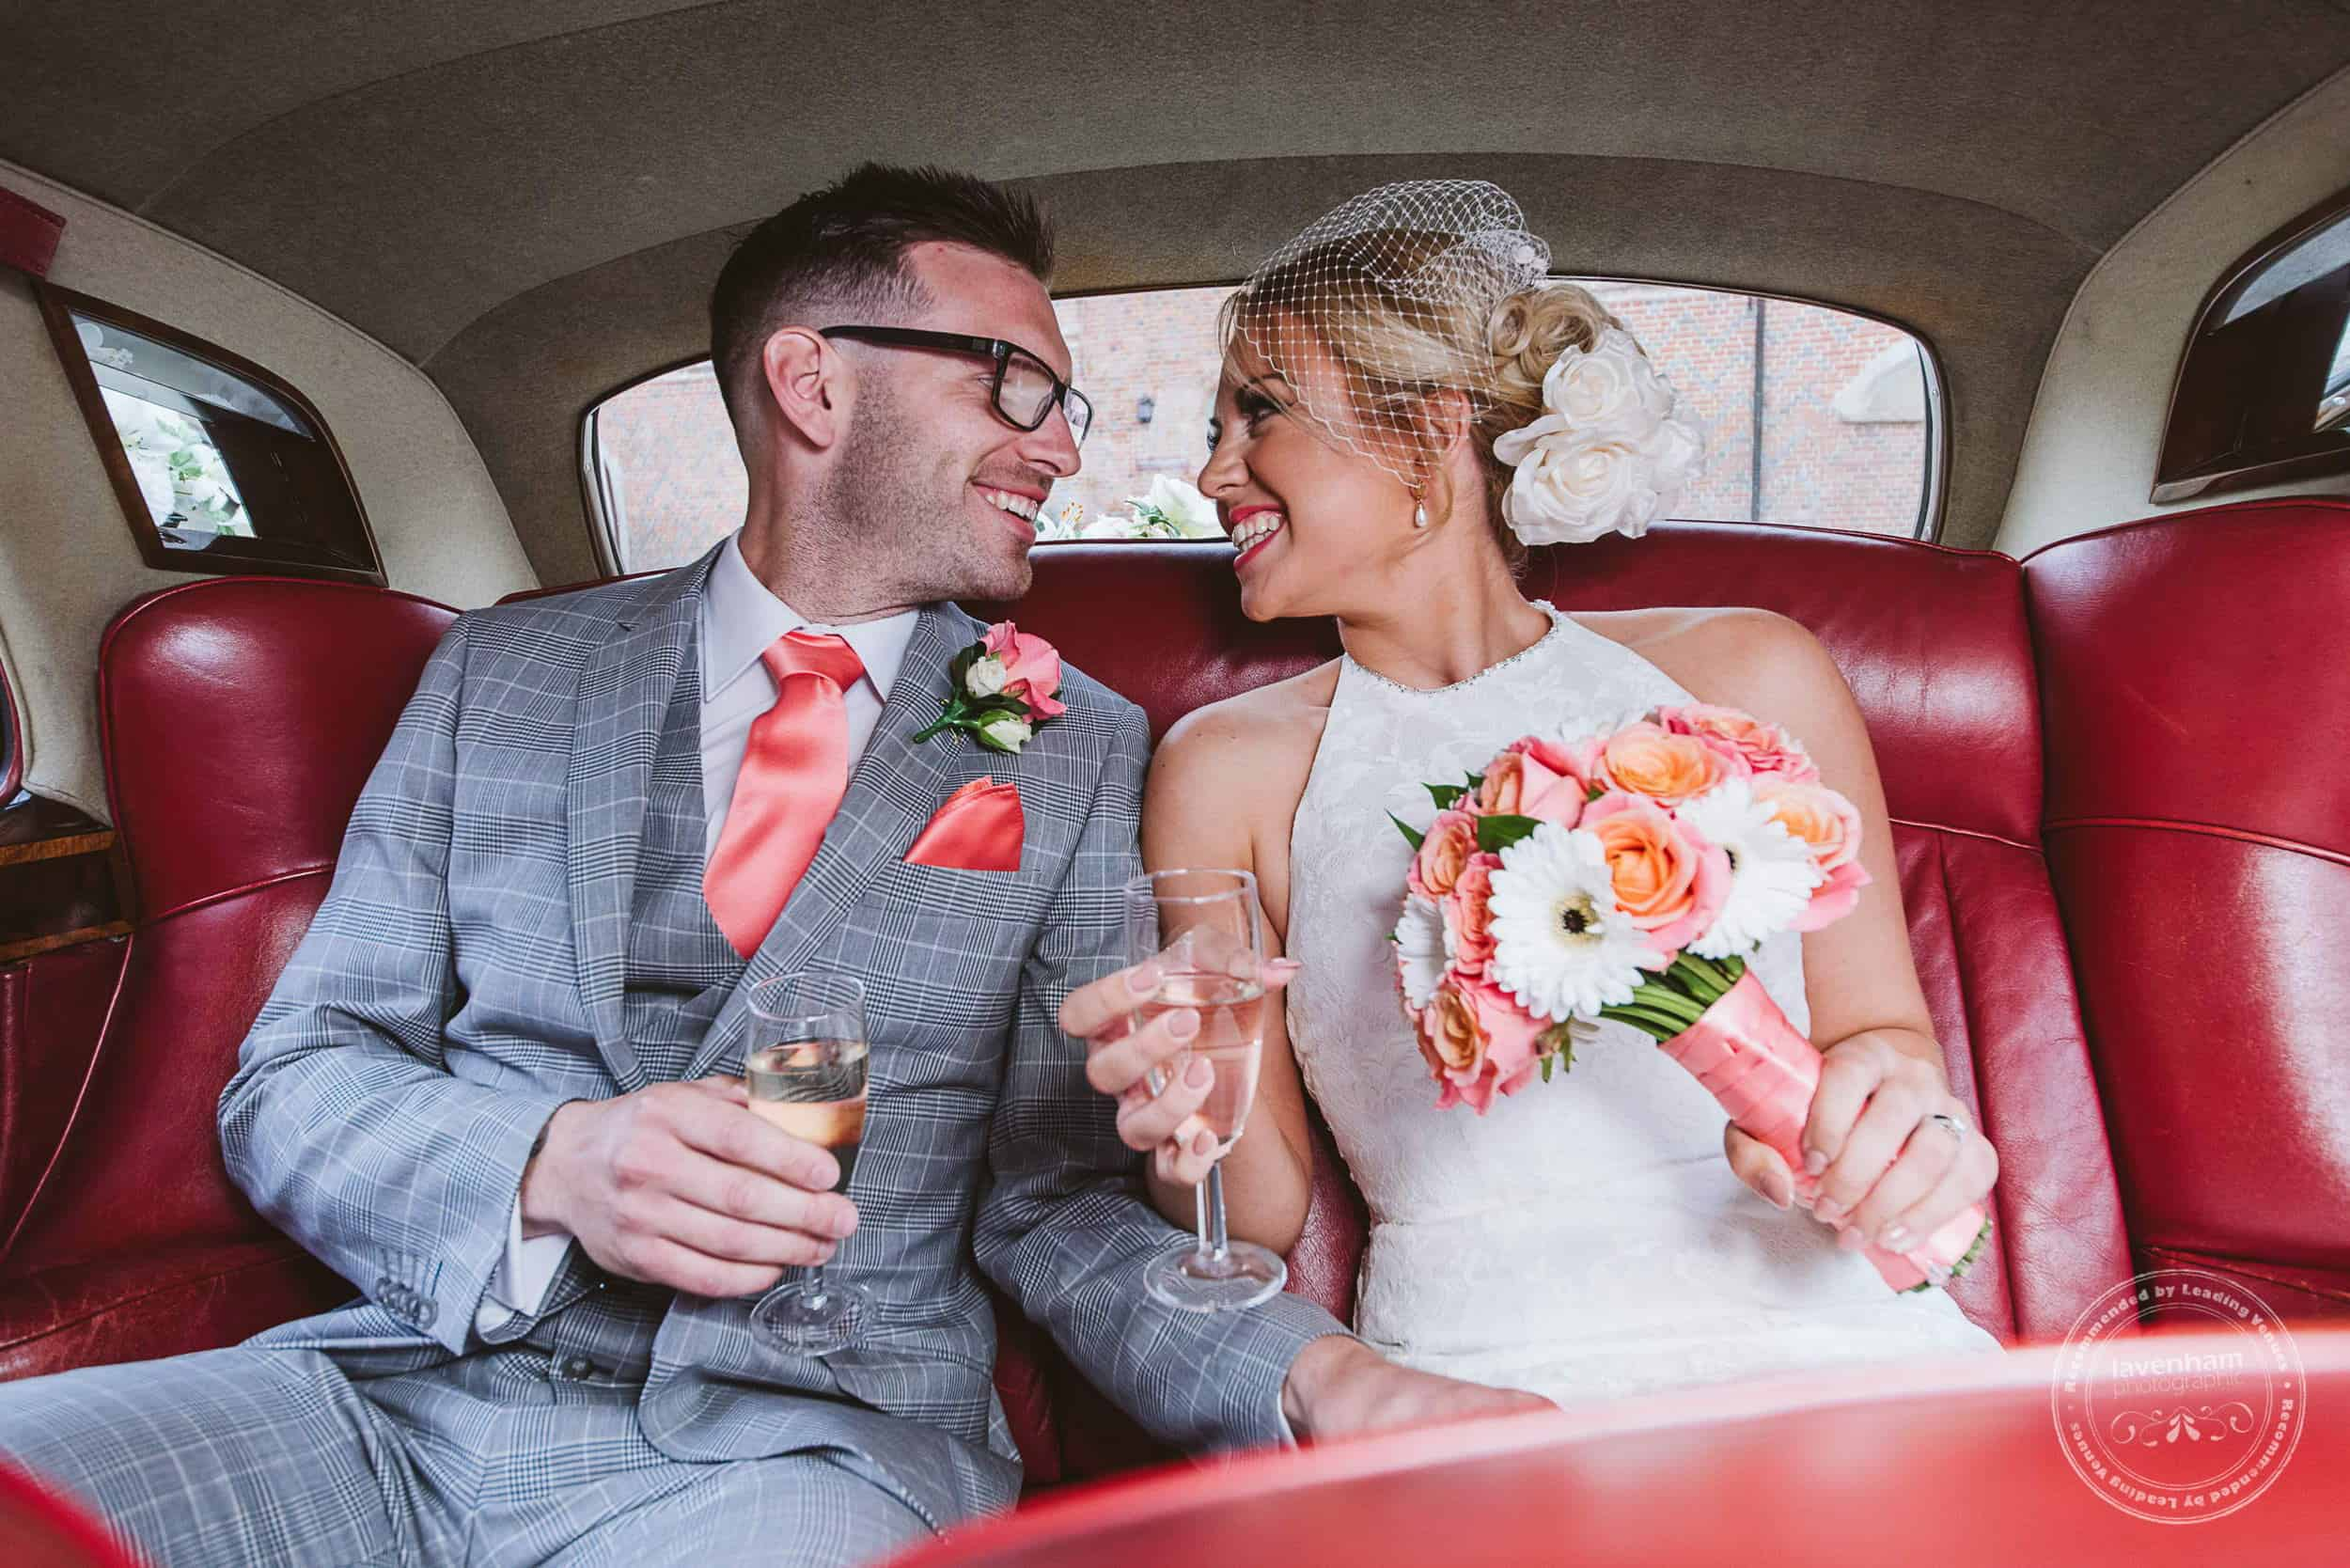 140717 Layer Marney Wedding Photography by Lavenham Photographic 048